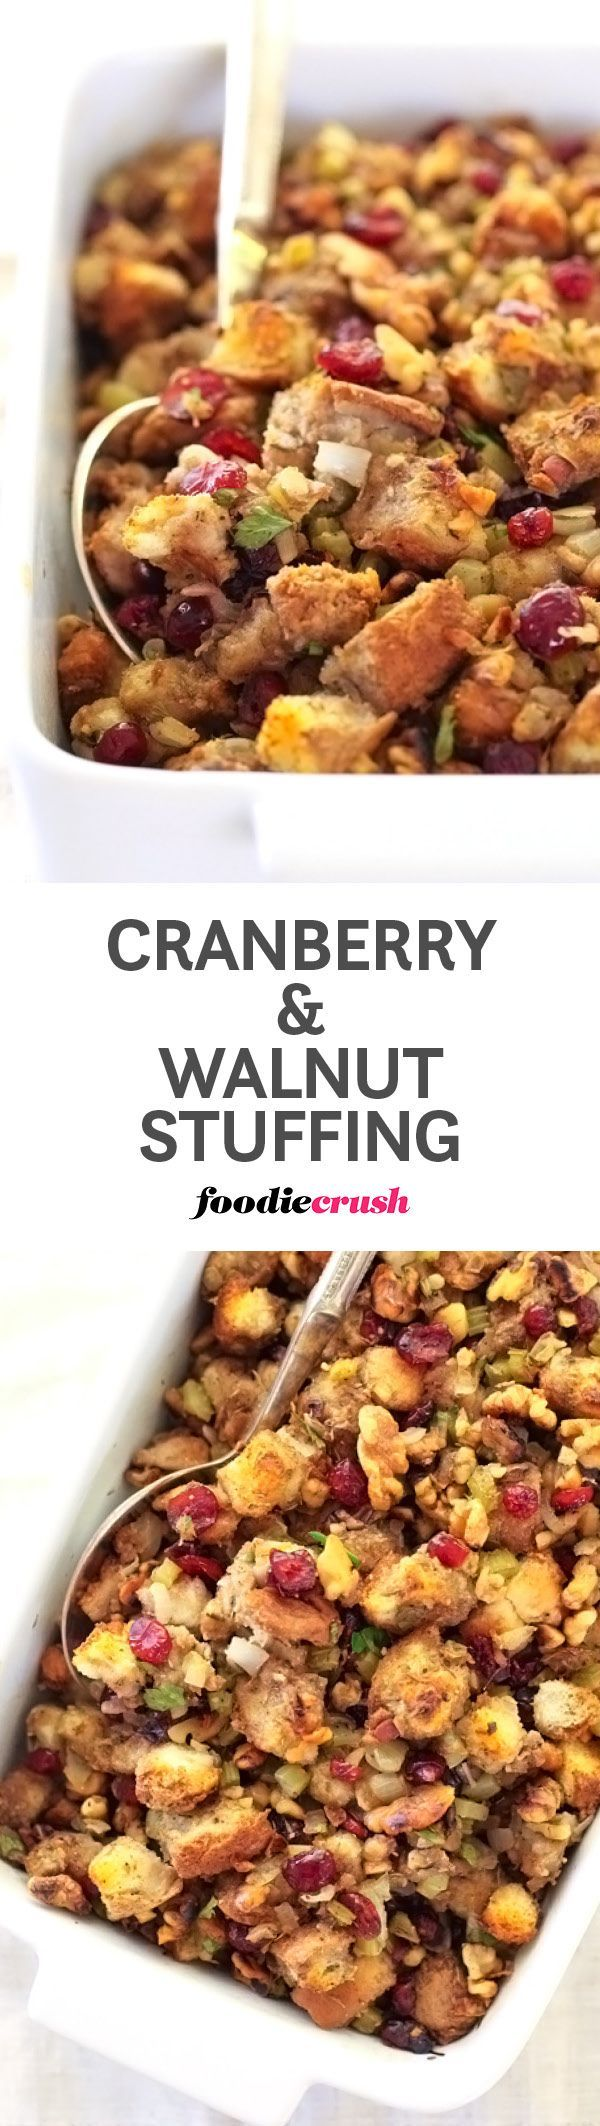 The play of savory and sweet is what makes this Cranberry & Walnut Stuffing extra special. http://foodiecrush.com #stuffing #dressing #thanksgiving